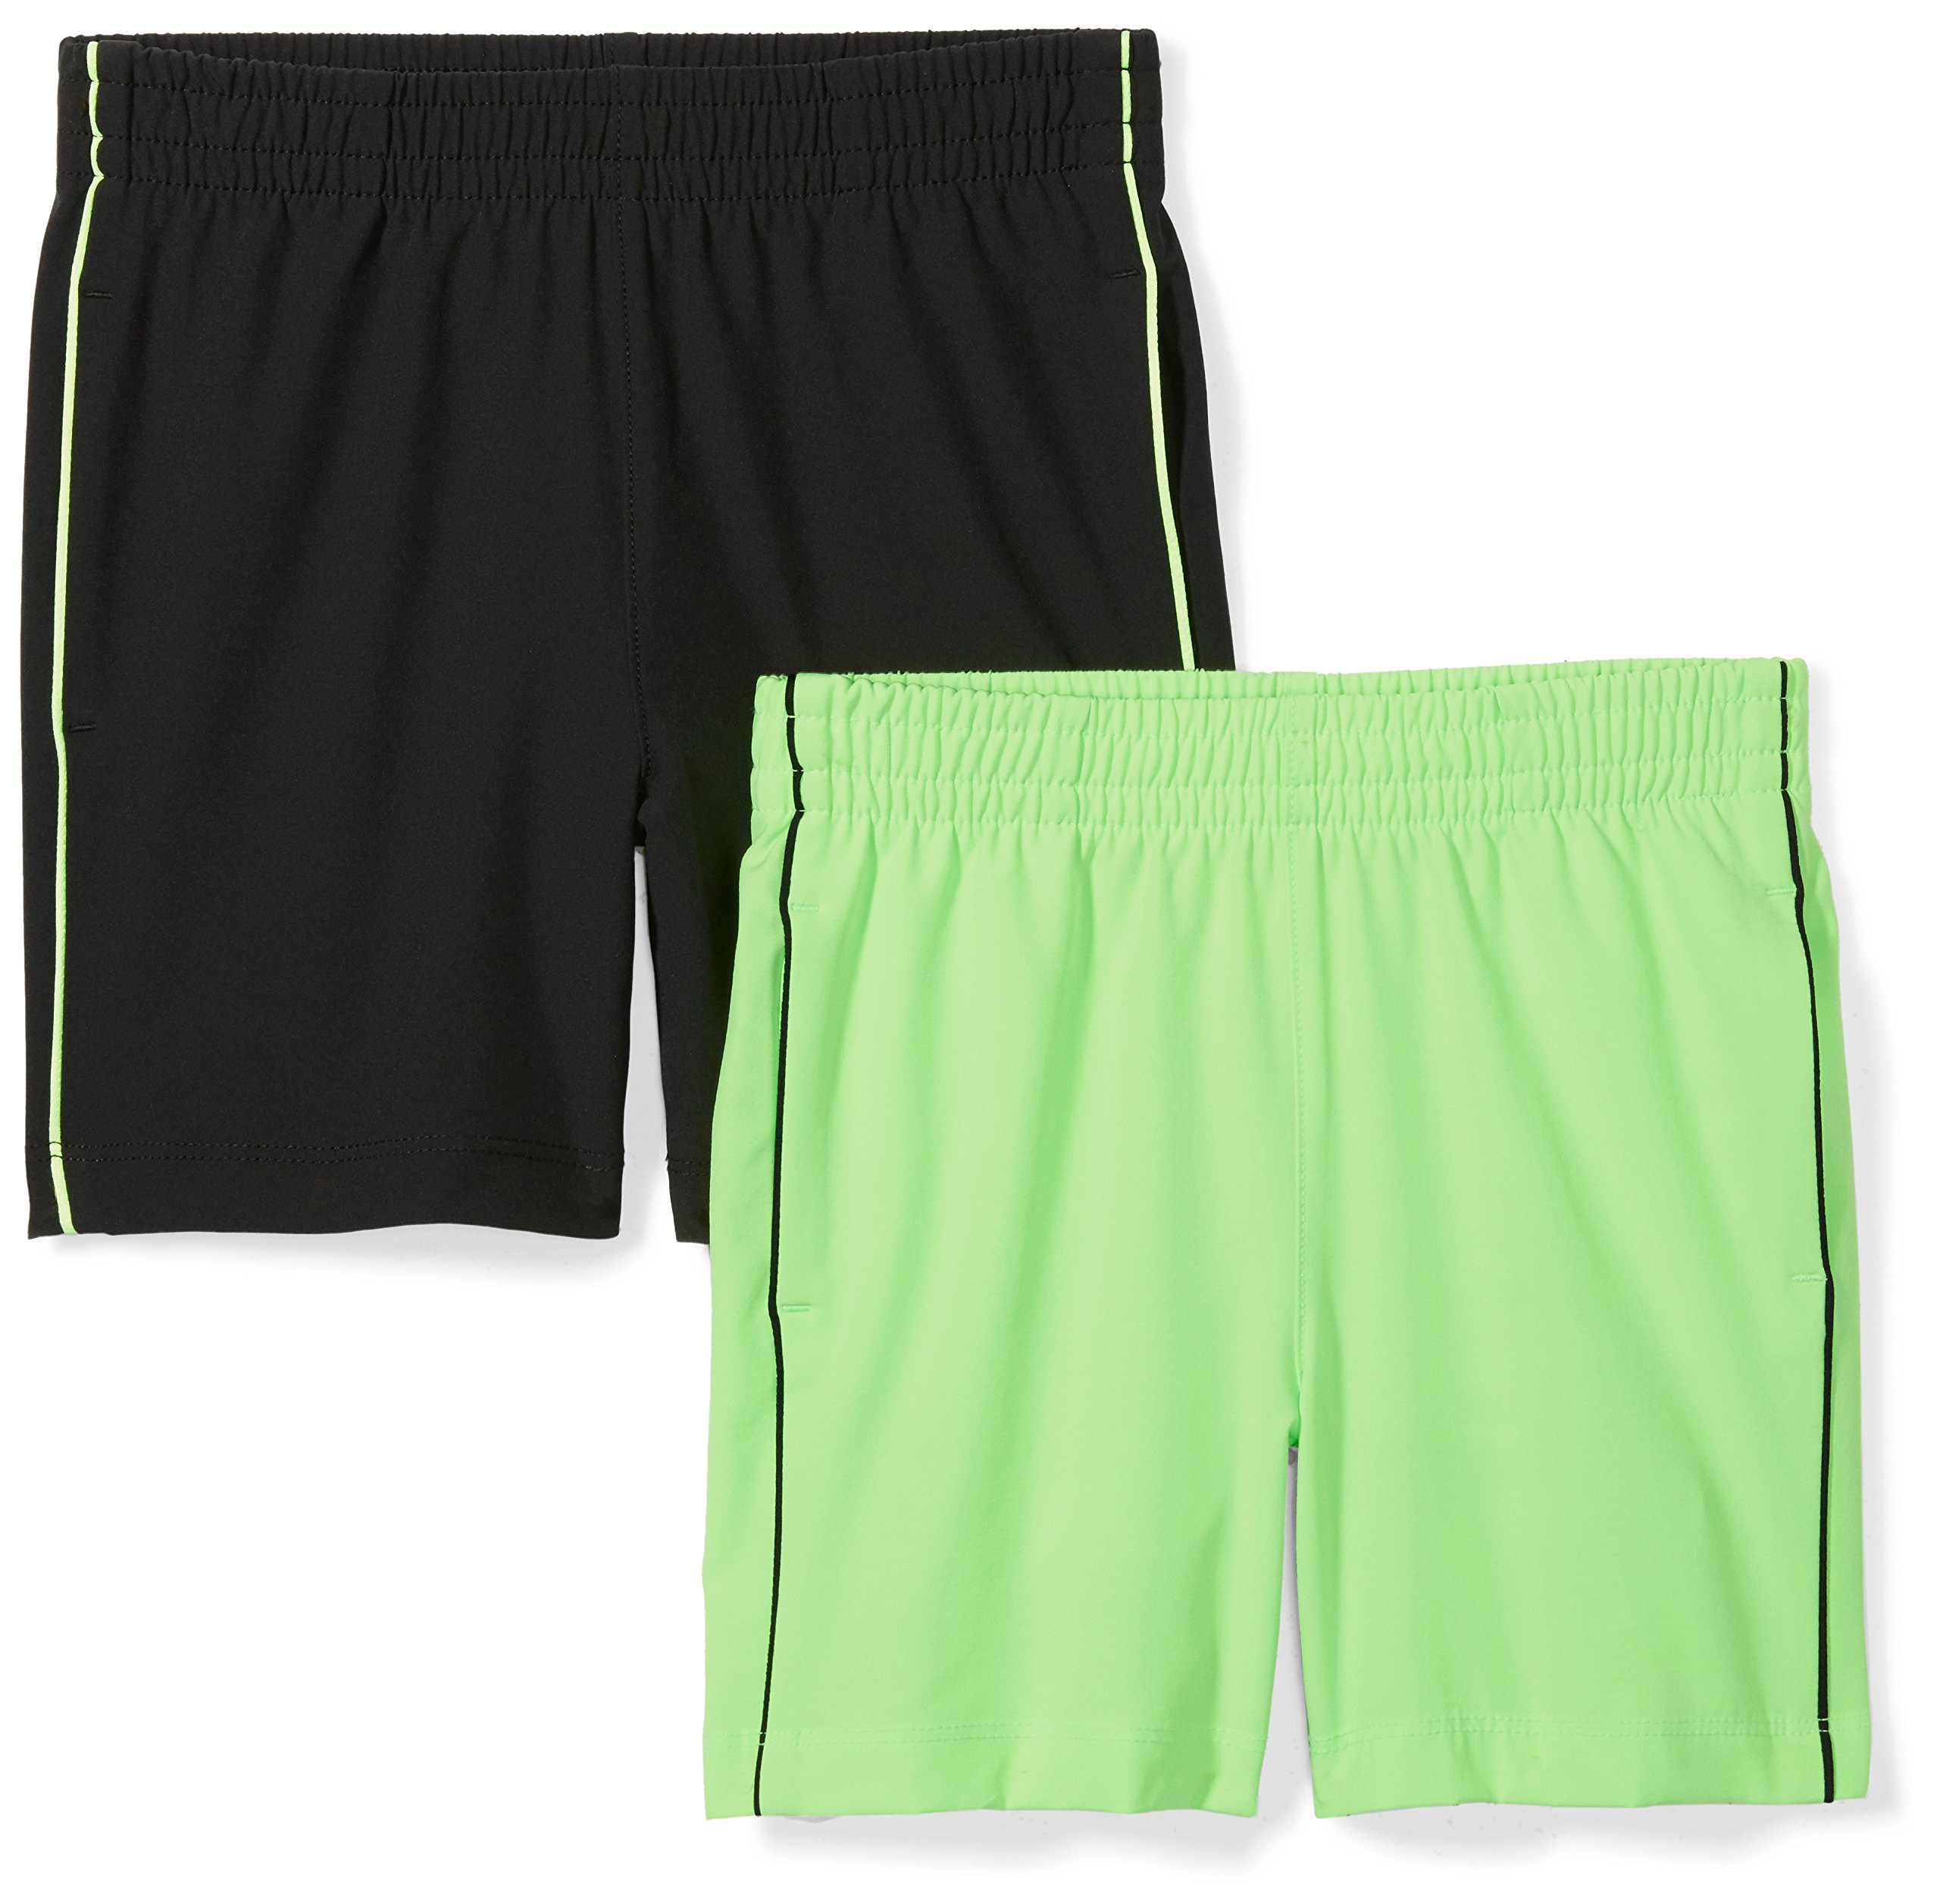 Spotted Zebra Big Boys' 2-Pack Active Woven Shorts, Green/Black, Large (10)